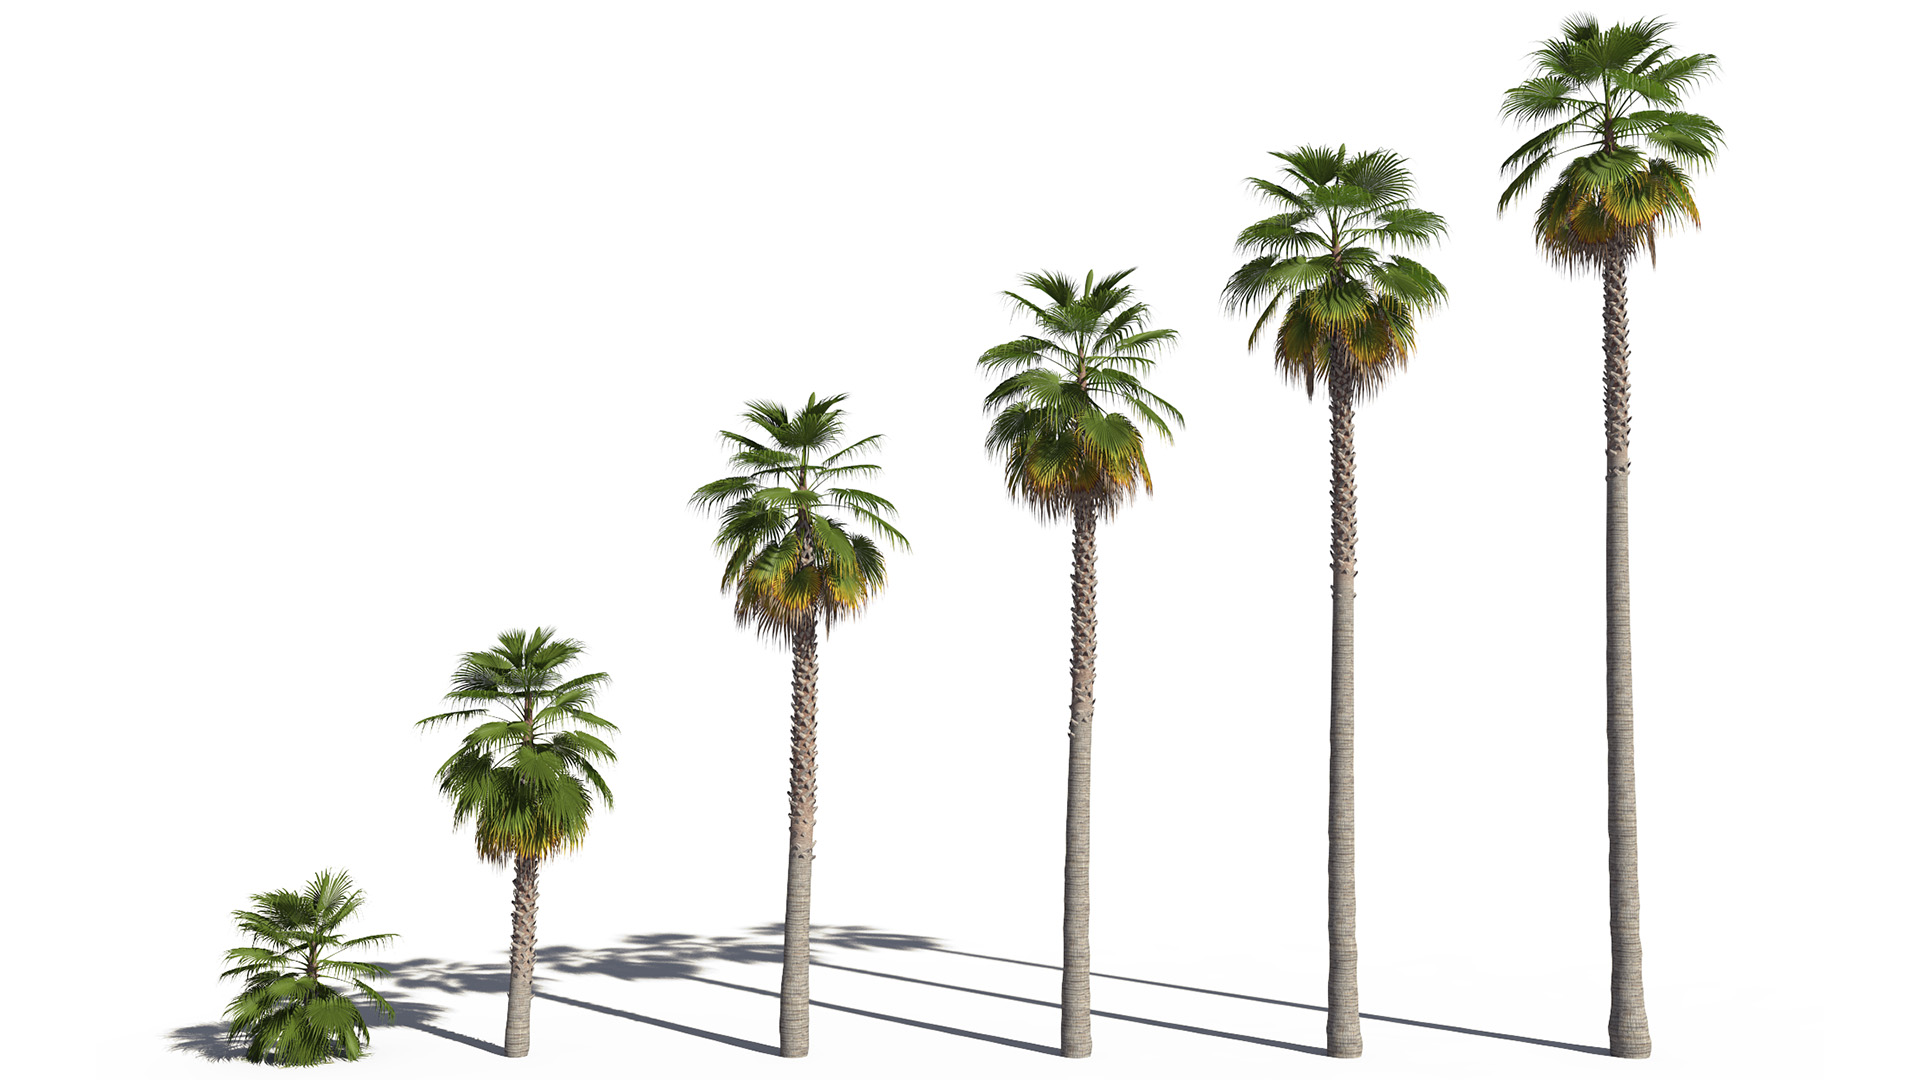 3D model of the Mexican fan palm Washingtonia robusta maturity variations